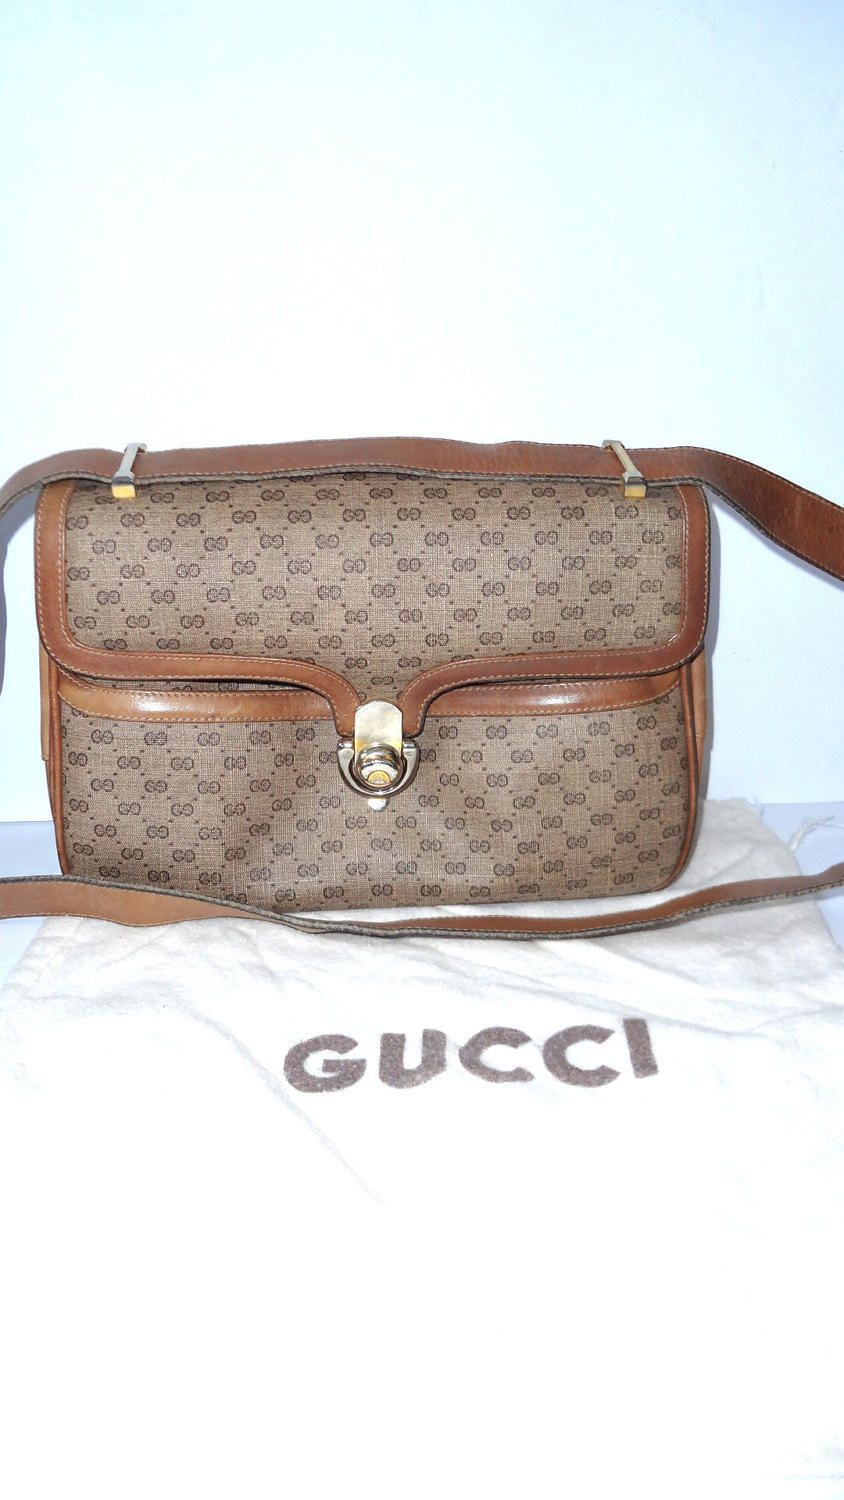 e43fc89c7eb098 Authentic Vintage GUCCI Organizing handbag micro monogram GG 70's bag  w/dustbag small super collectible cute by DoorstepFashions on Etsy